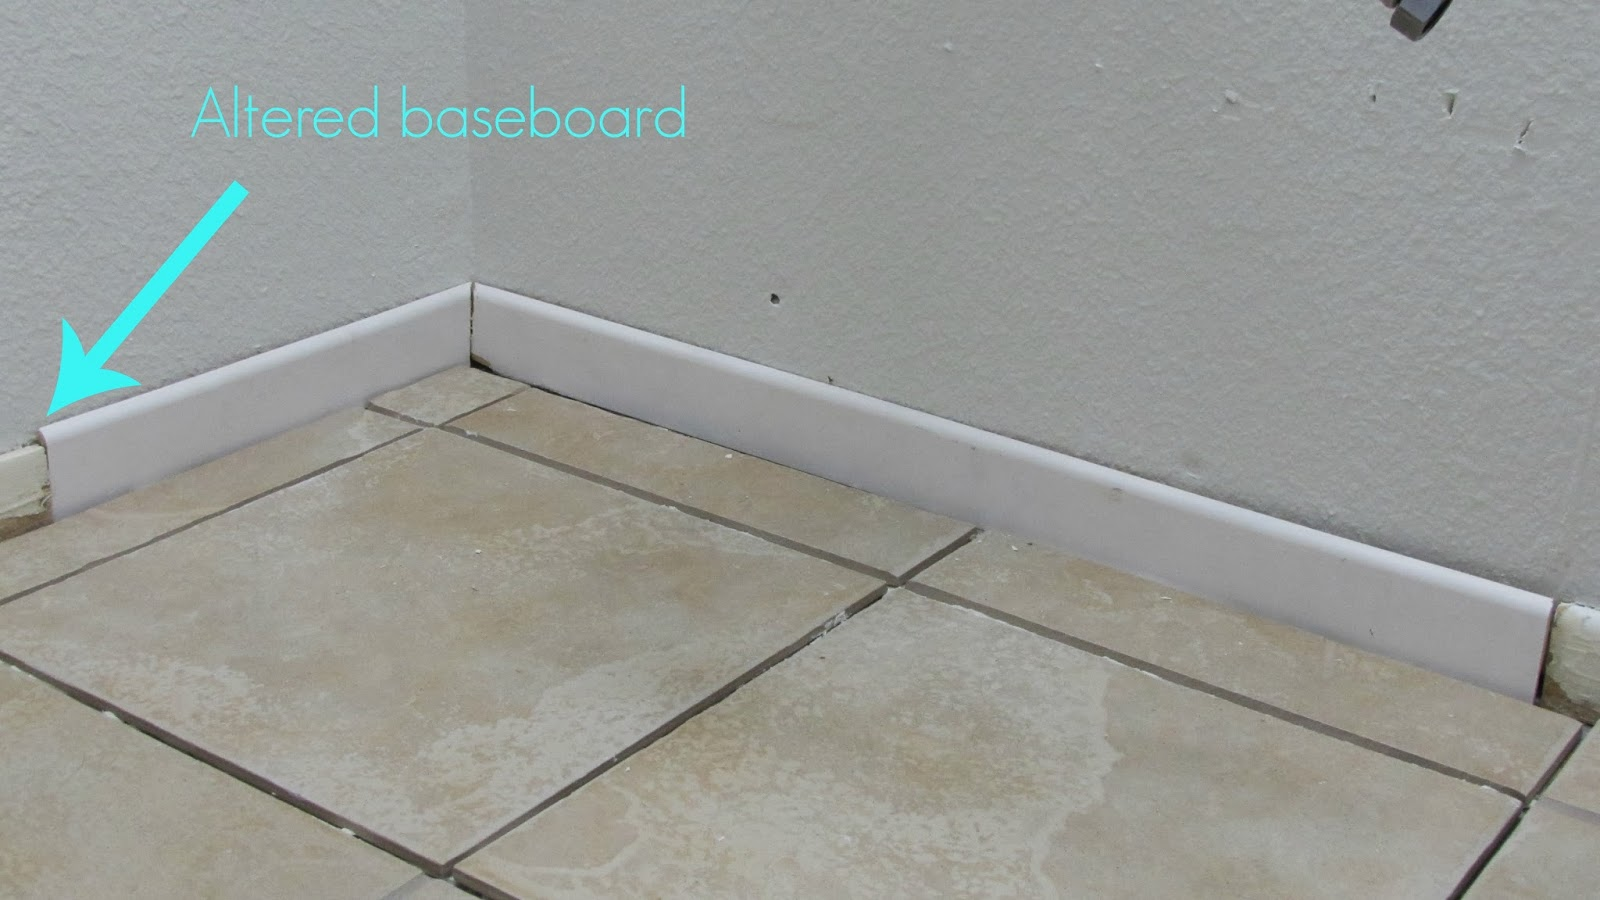 bathroom baseboard ideas. bathroom baseboard ideas o